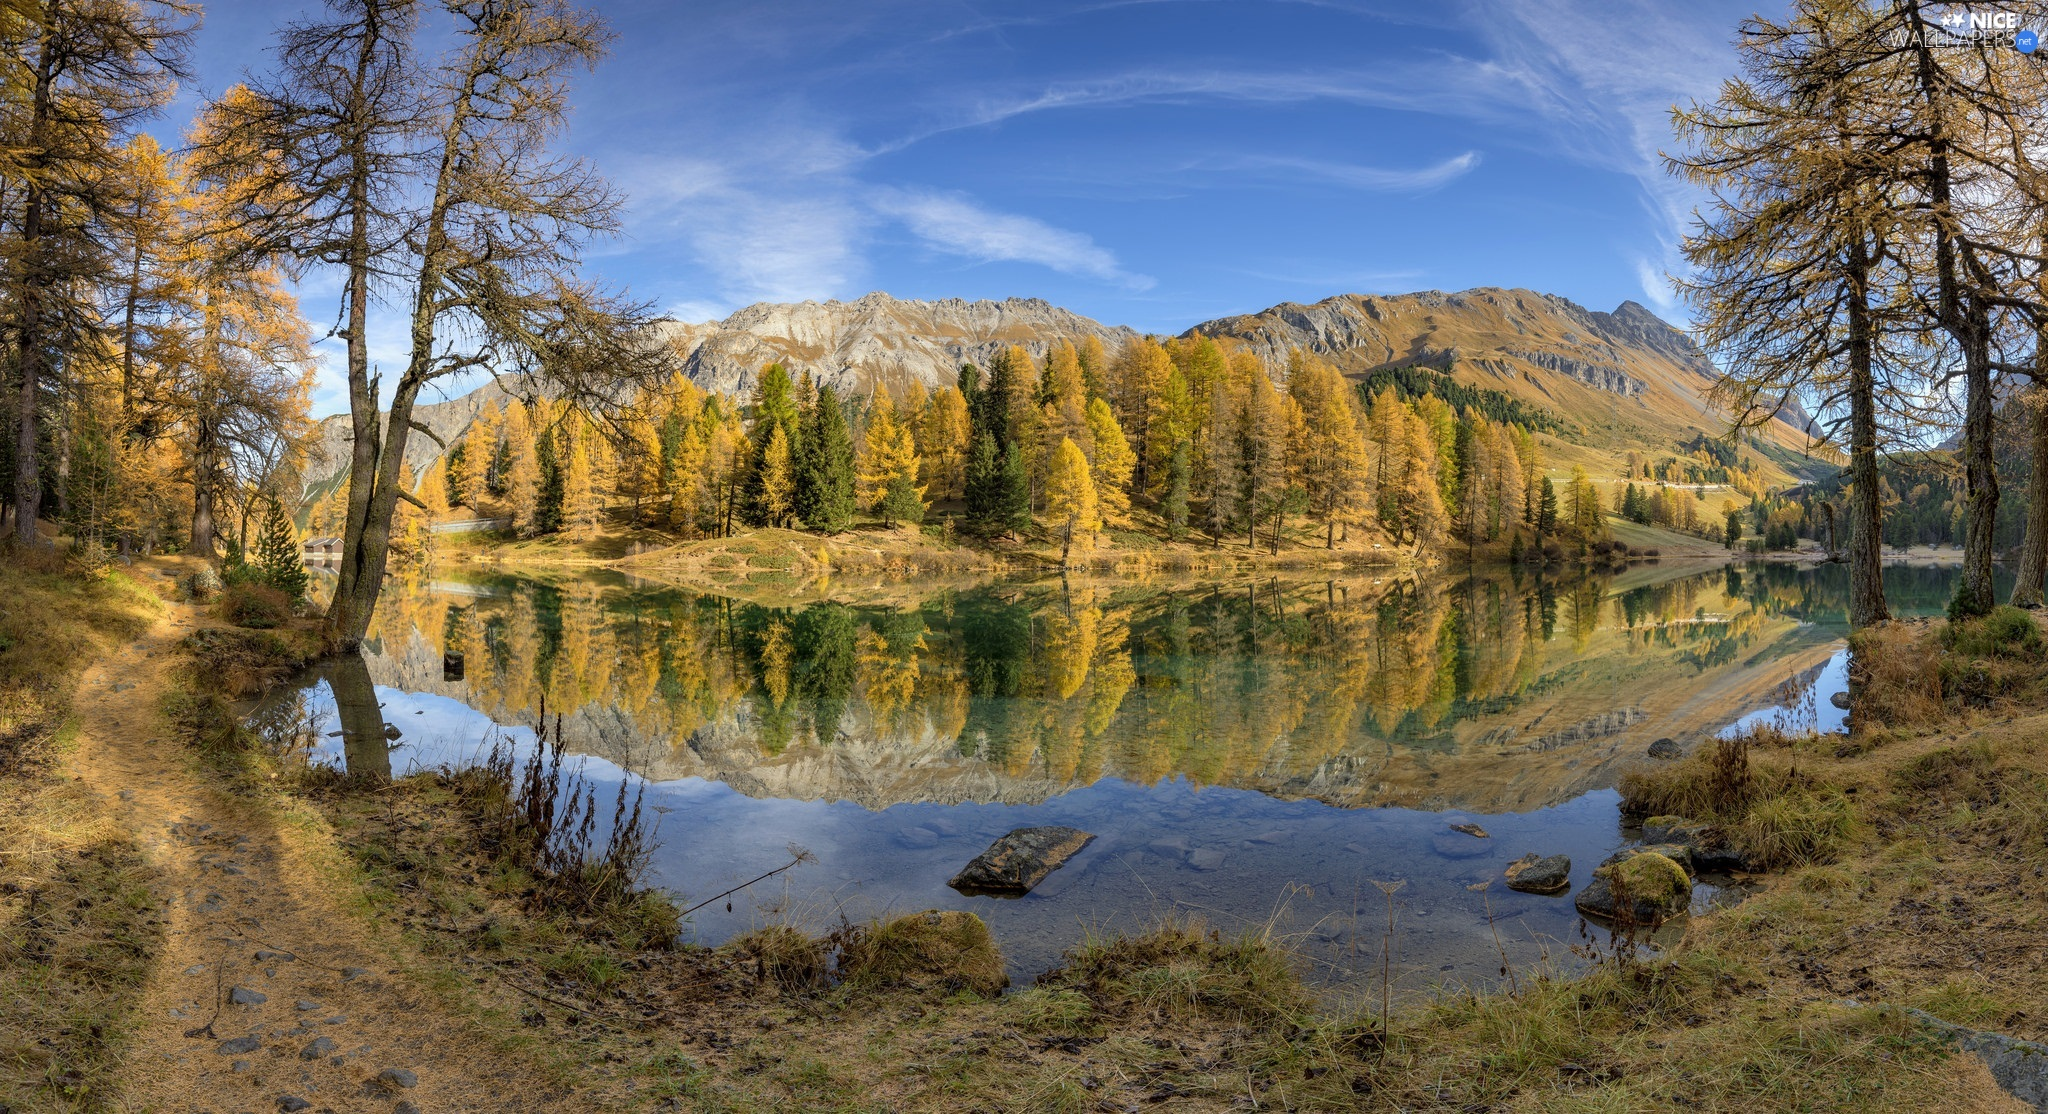 lake, autumn, viewes, forest, trees, Mountains